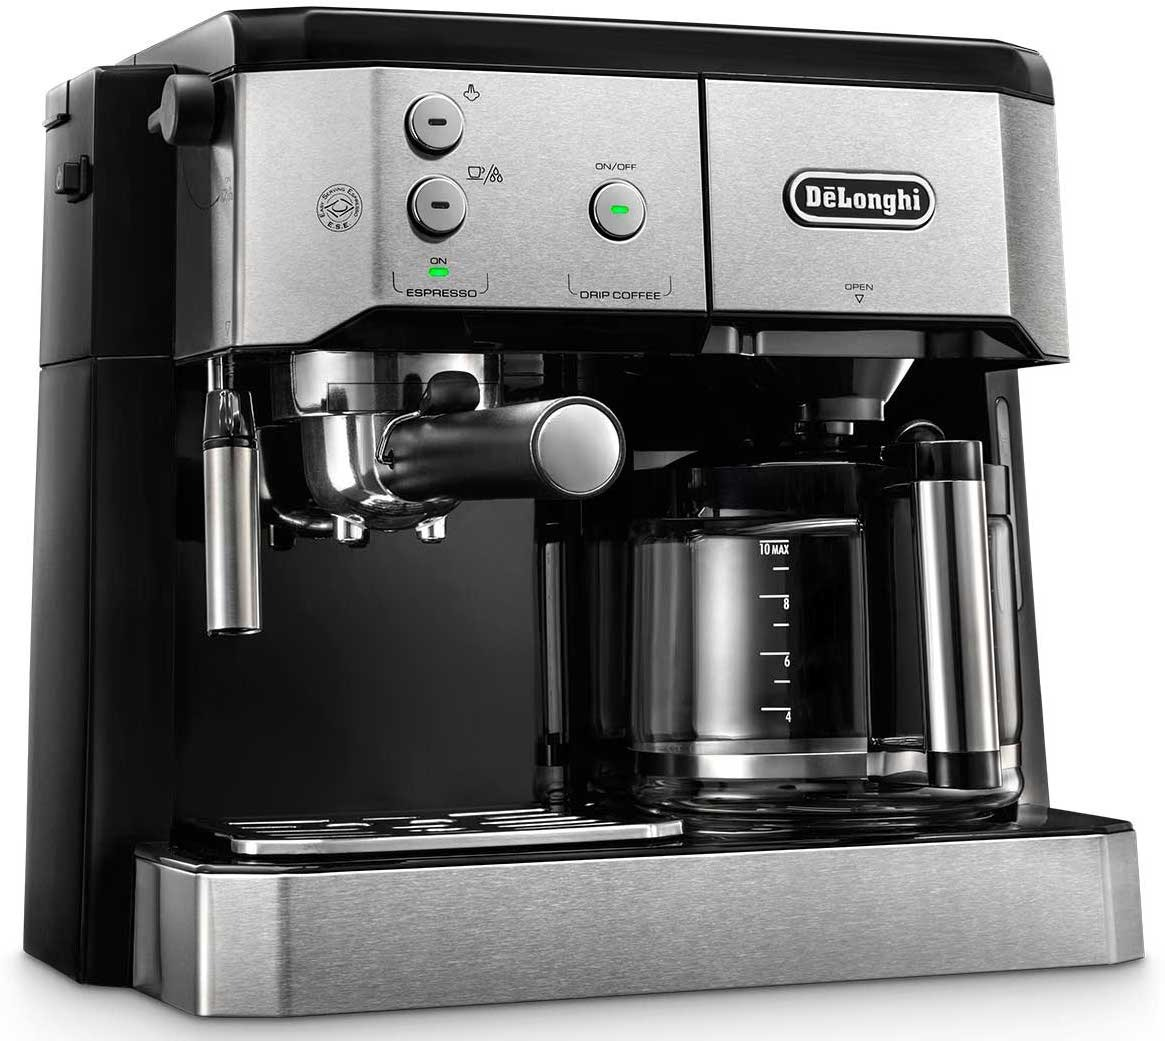 DeLonghi BCO421.S dual function coffee machine (espresso and drip ...